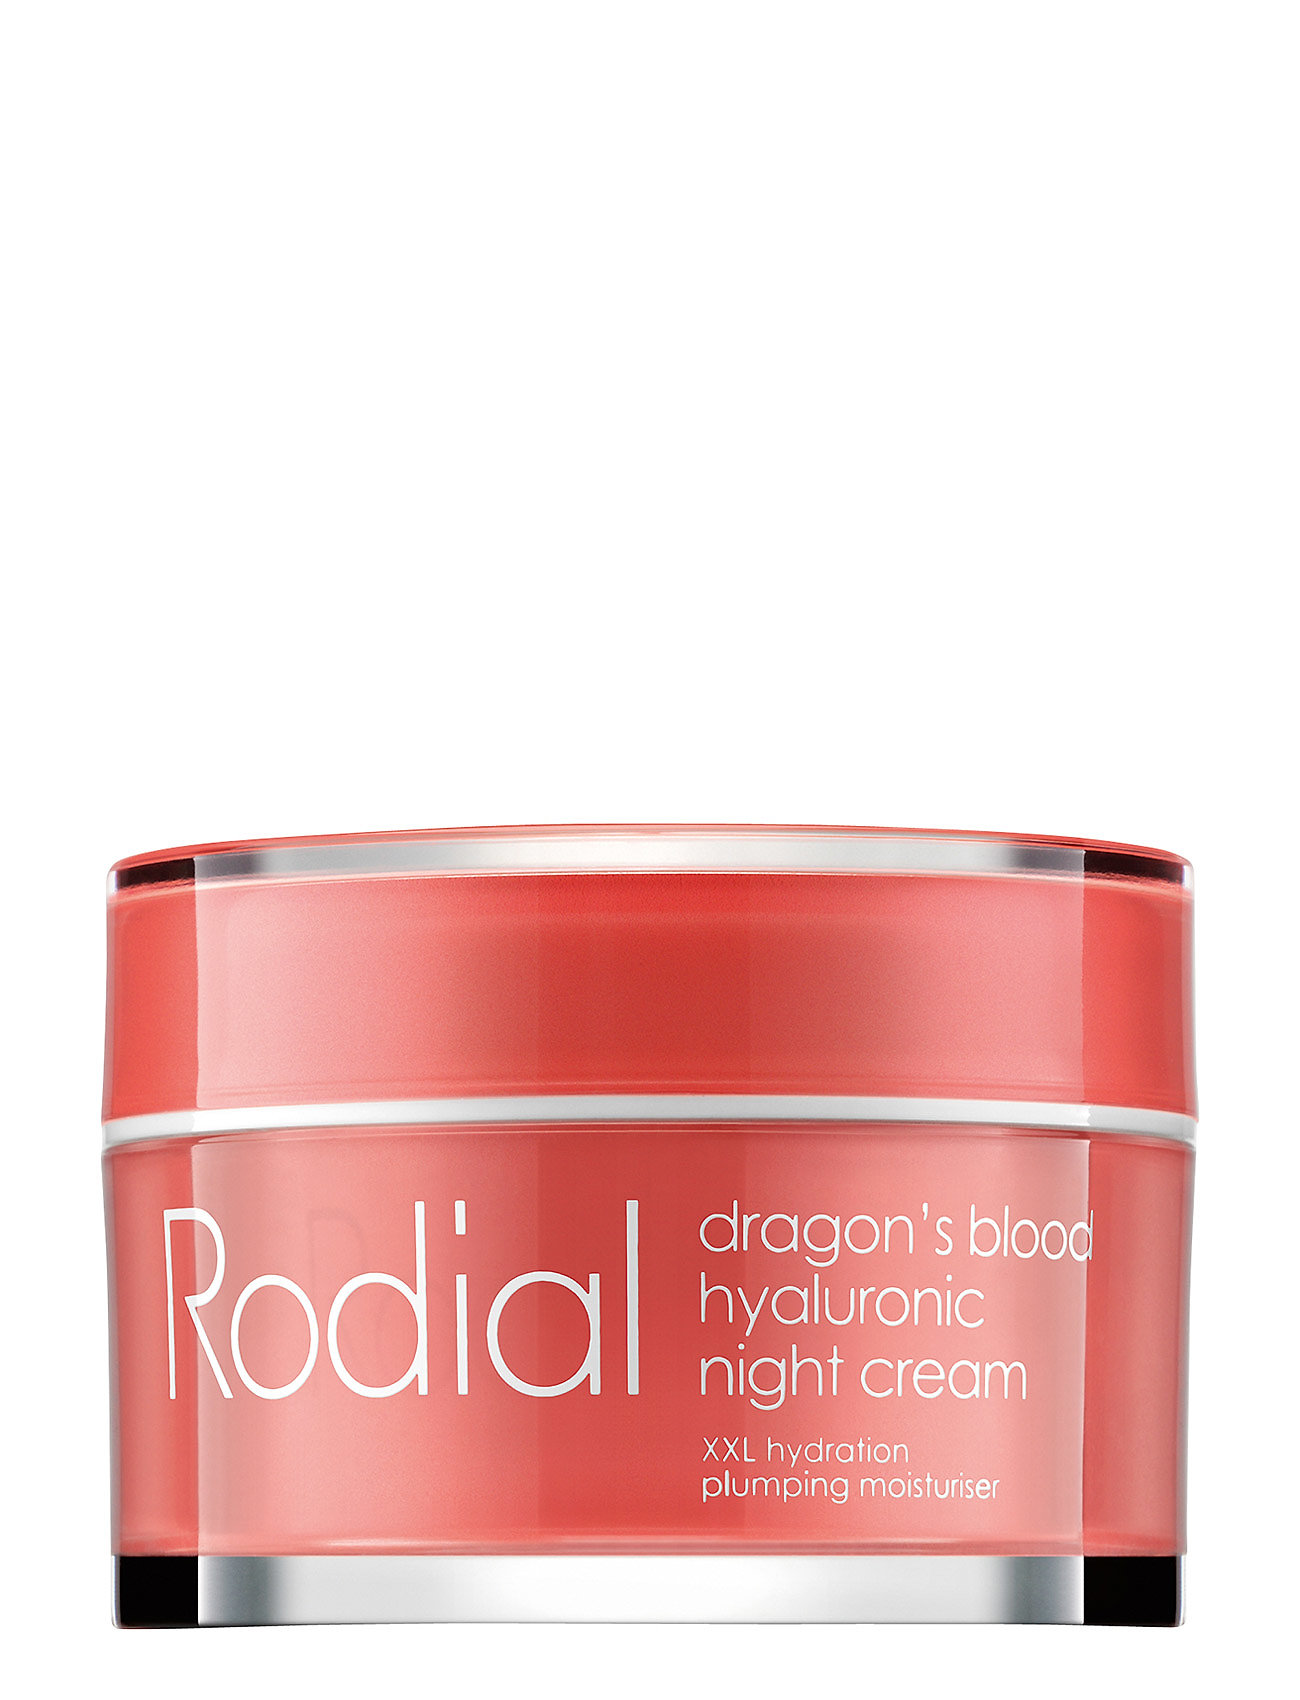 Image of Dragon'S Blood Hyaluronic Night Cream Beauty WOMEN Skin Care Face Night Cream Nude Rodial (3309882833)